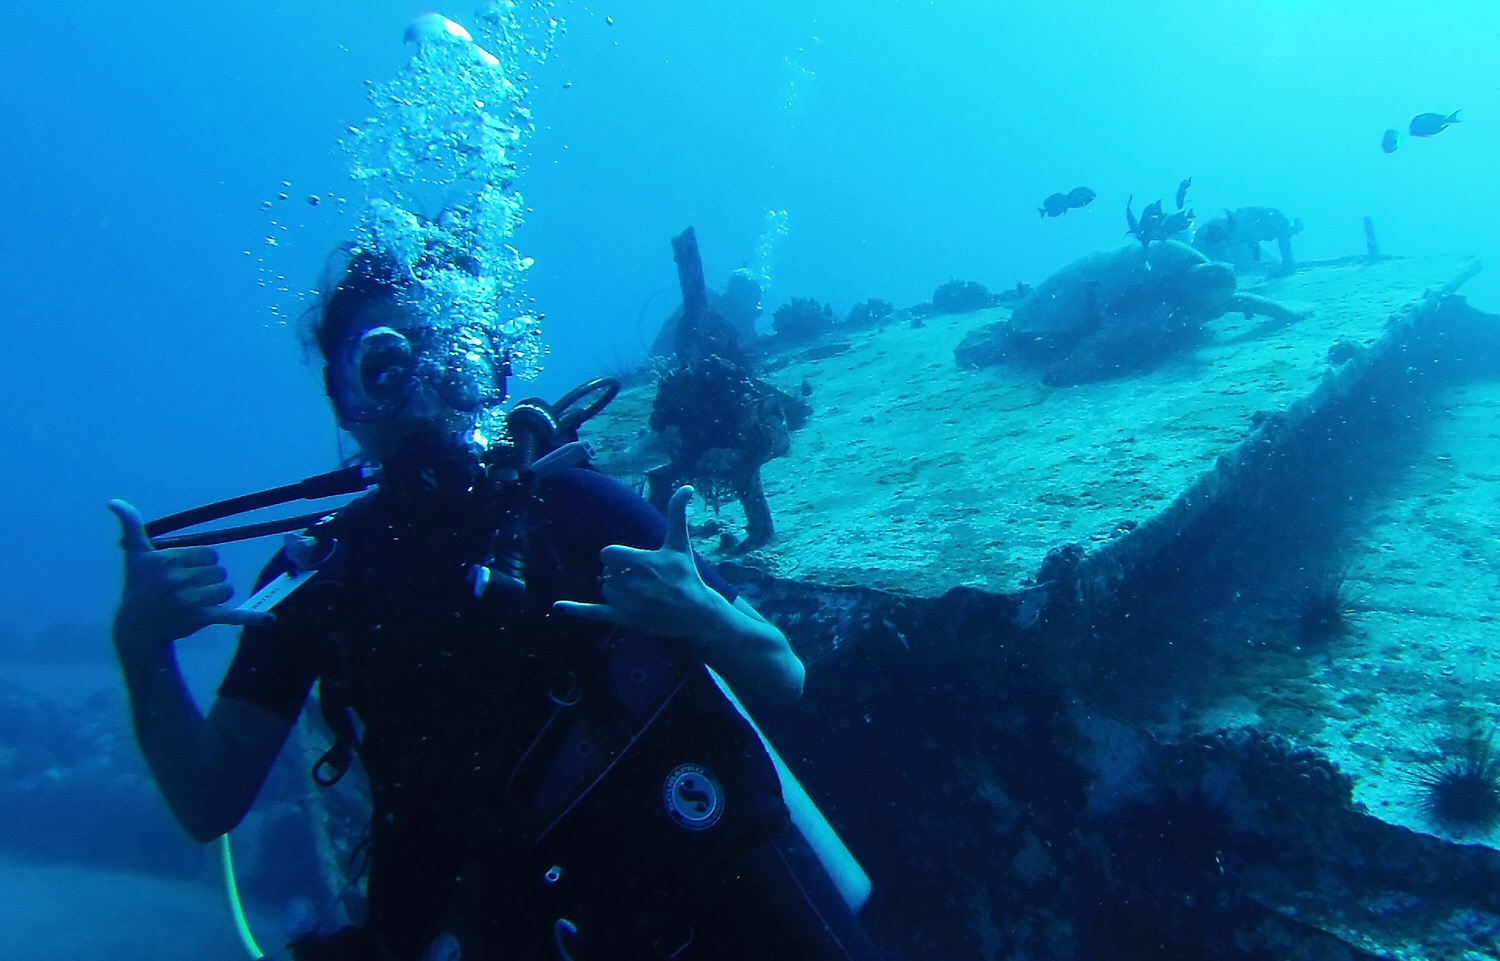 Wreck diving at the sea turtles cleaning station